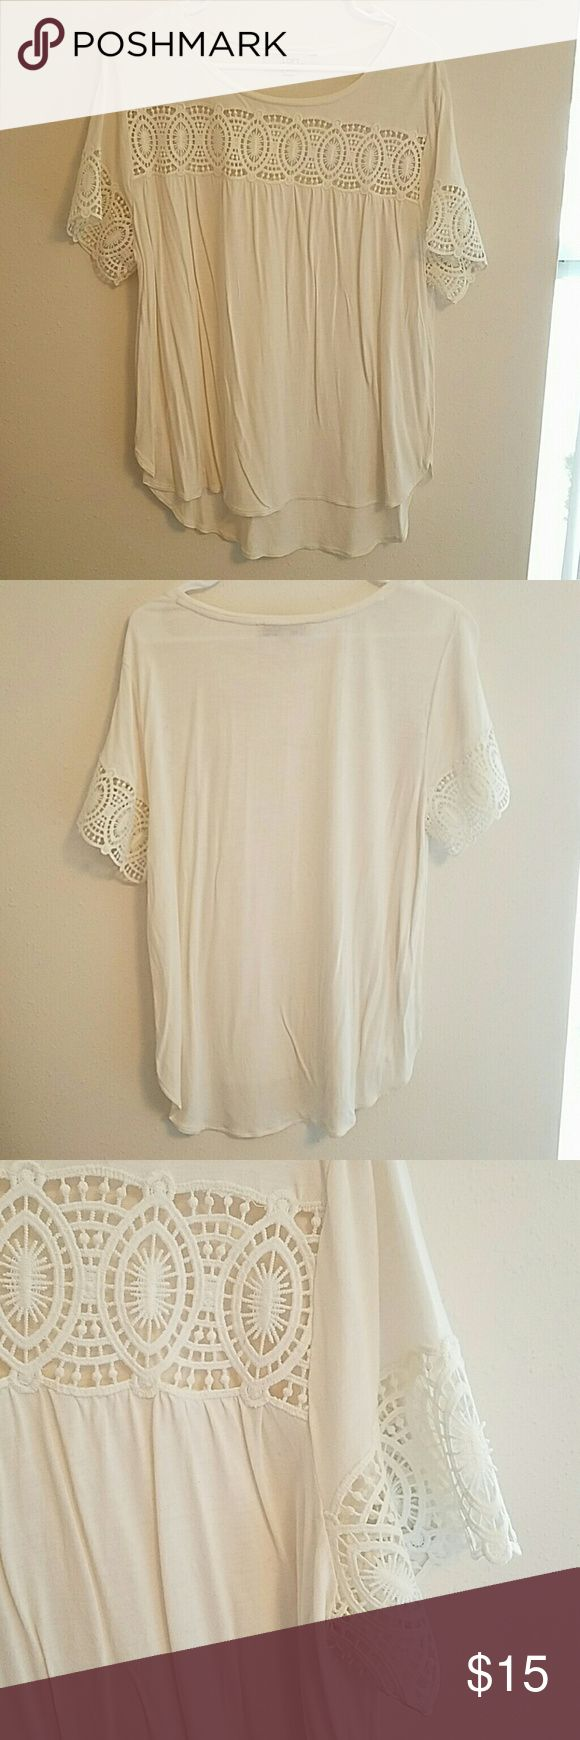 Loft crochet tee Only worn once! In perfect condition. White tee with crochet detailing on front and sleeves. Perfect for work or play! LOFT Tops Tees - Short Sleeve